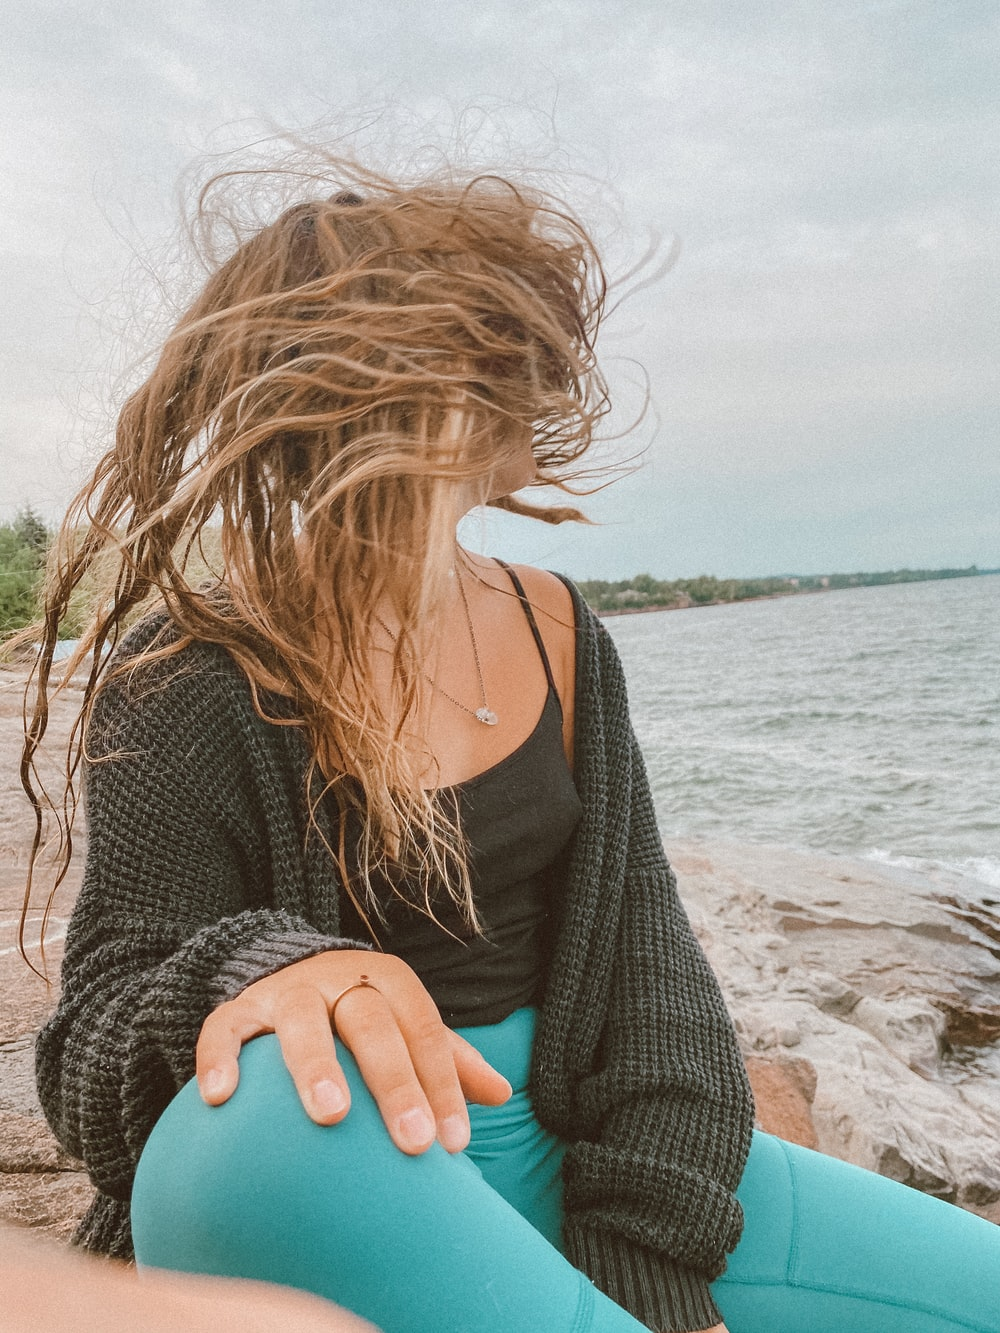 woman in black knit sweater sitting on beach shore during daytime